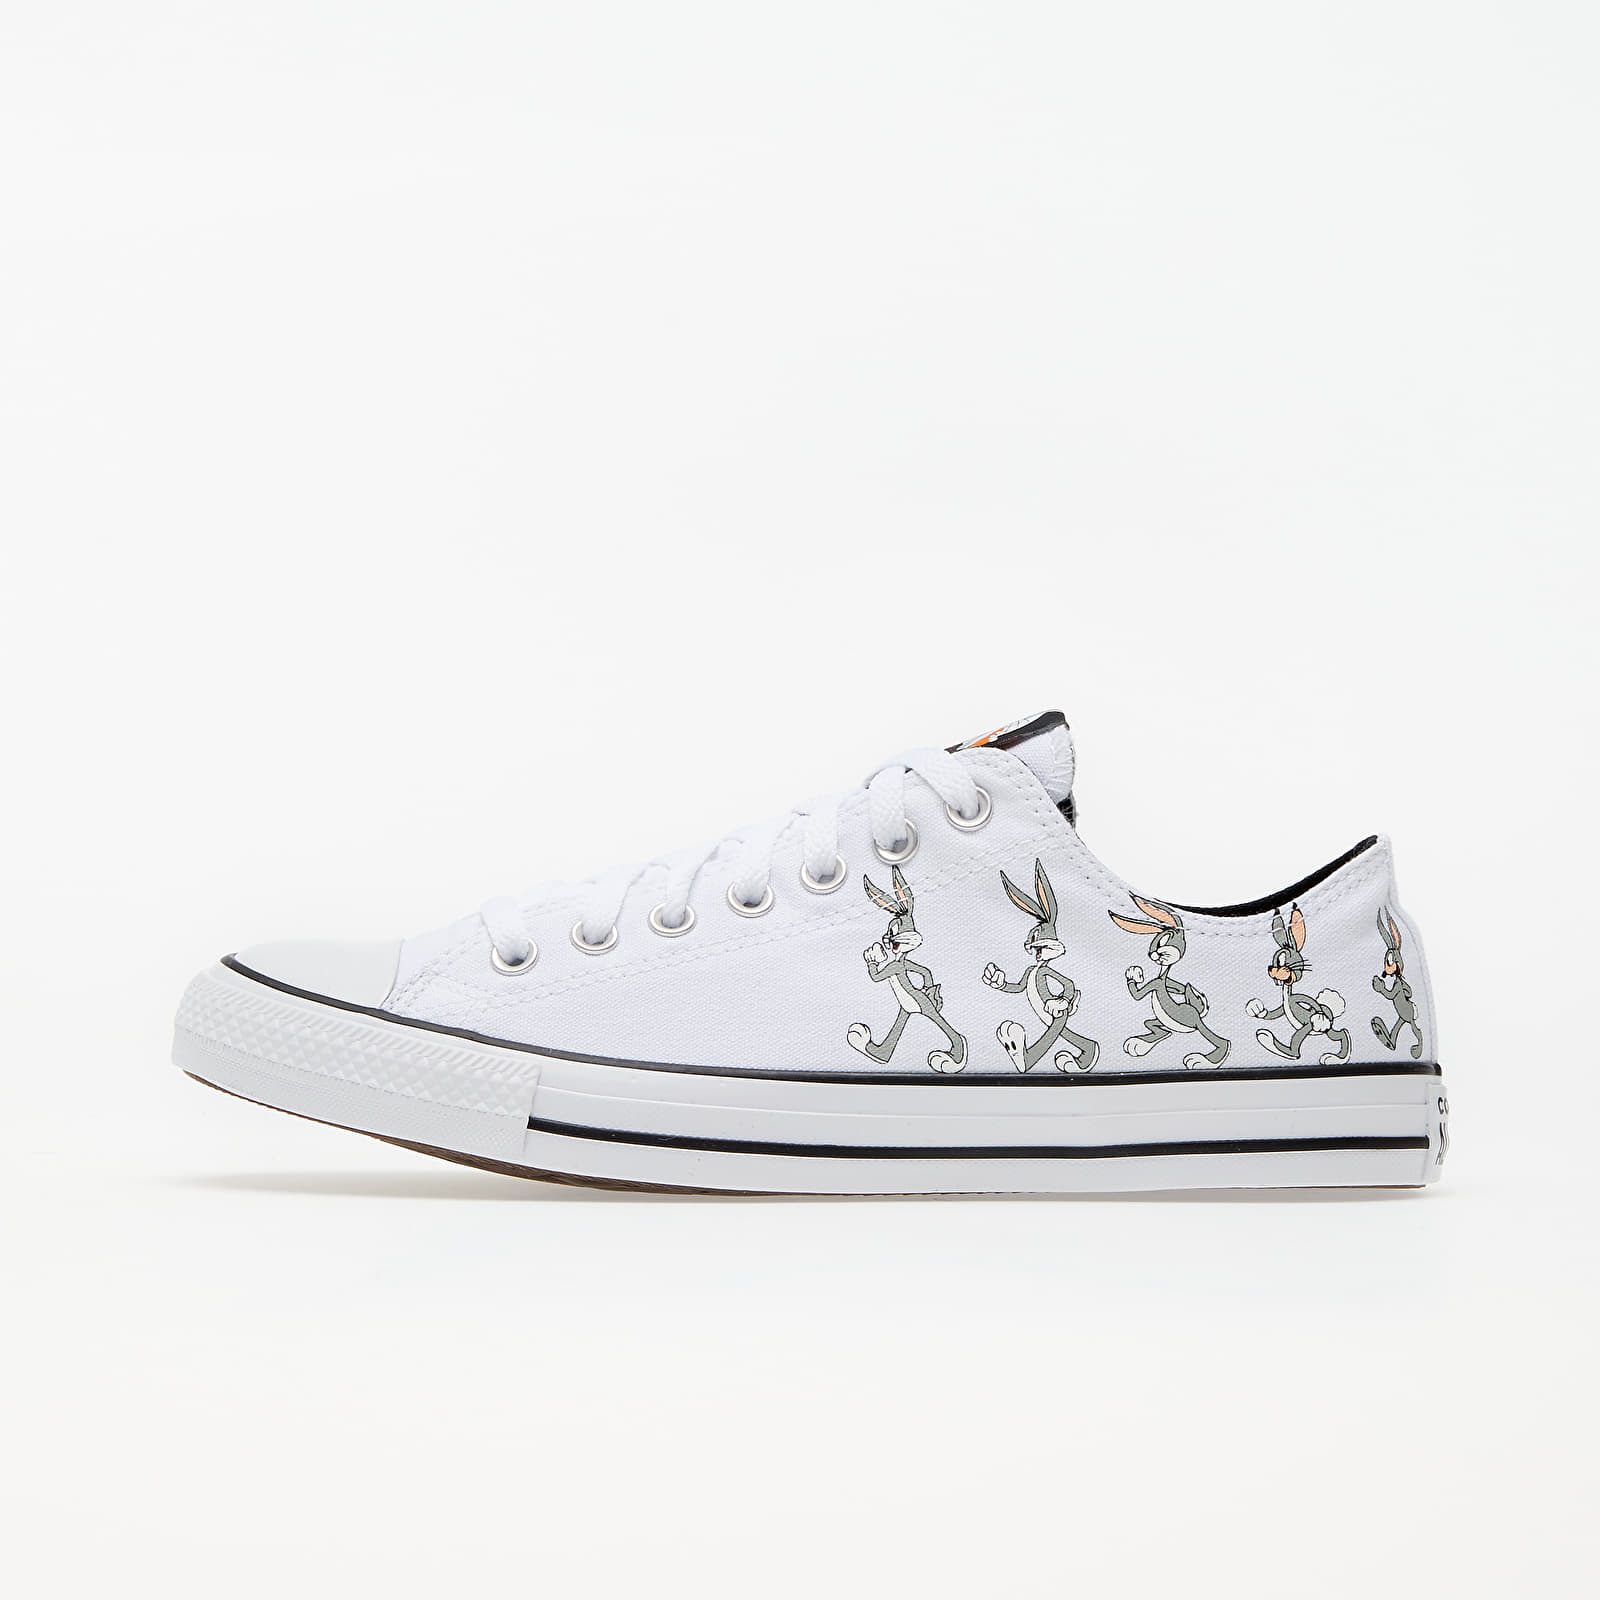 Men's shoes Converse x Bugs Bunny Chuck Taylor All Star OX Grey/ White